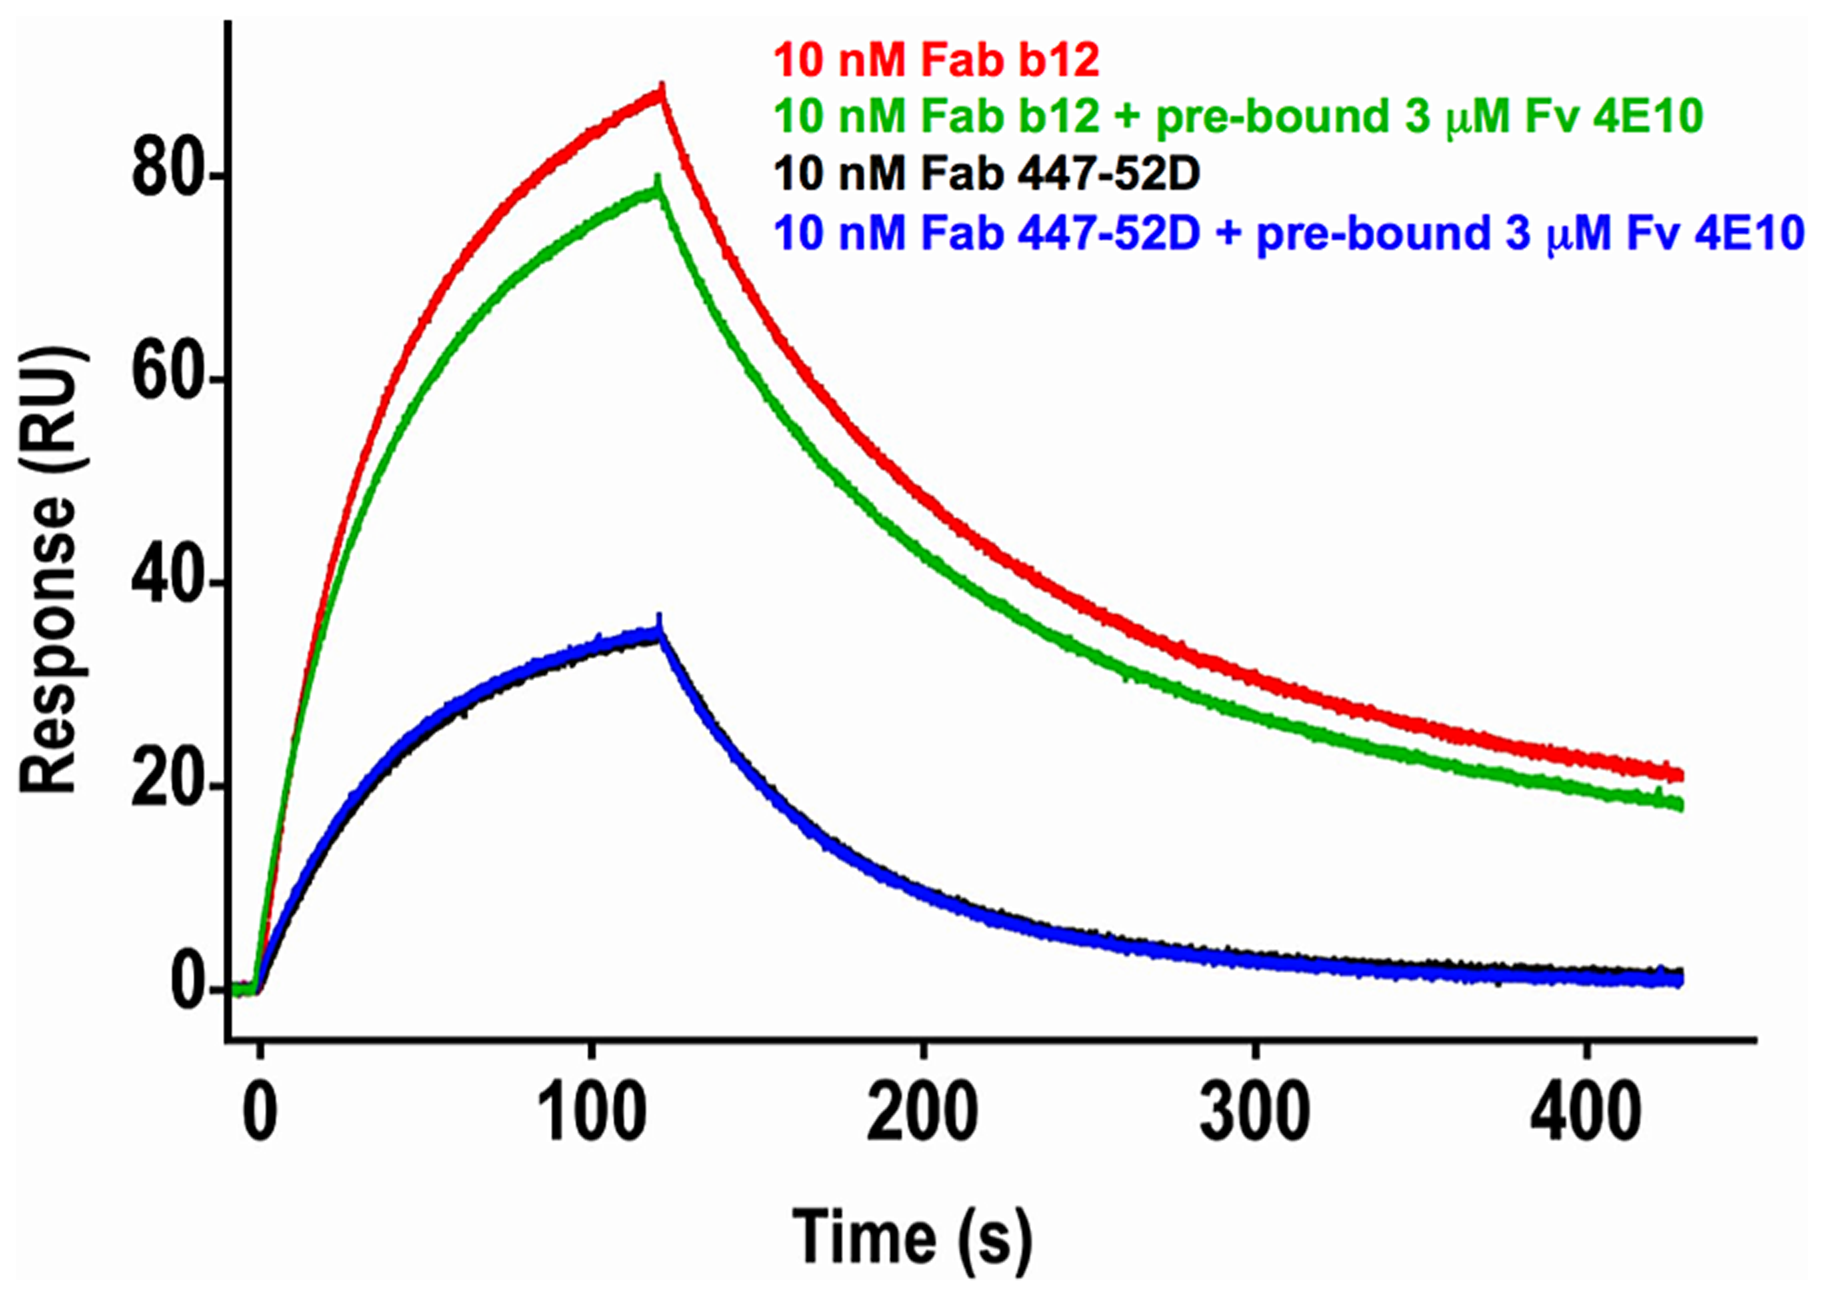 Effects of 4E10/gp140<sub>3</sub> pre-binding on 447-52D and b12 binding.